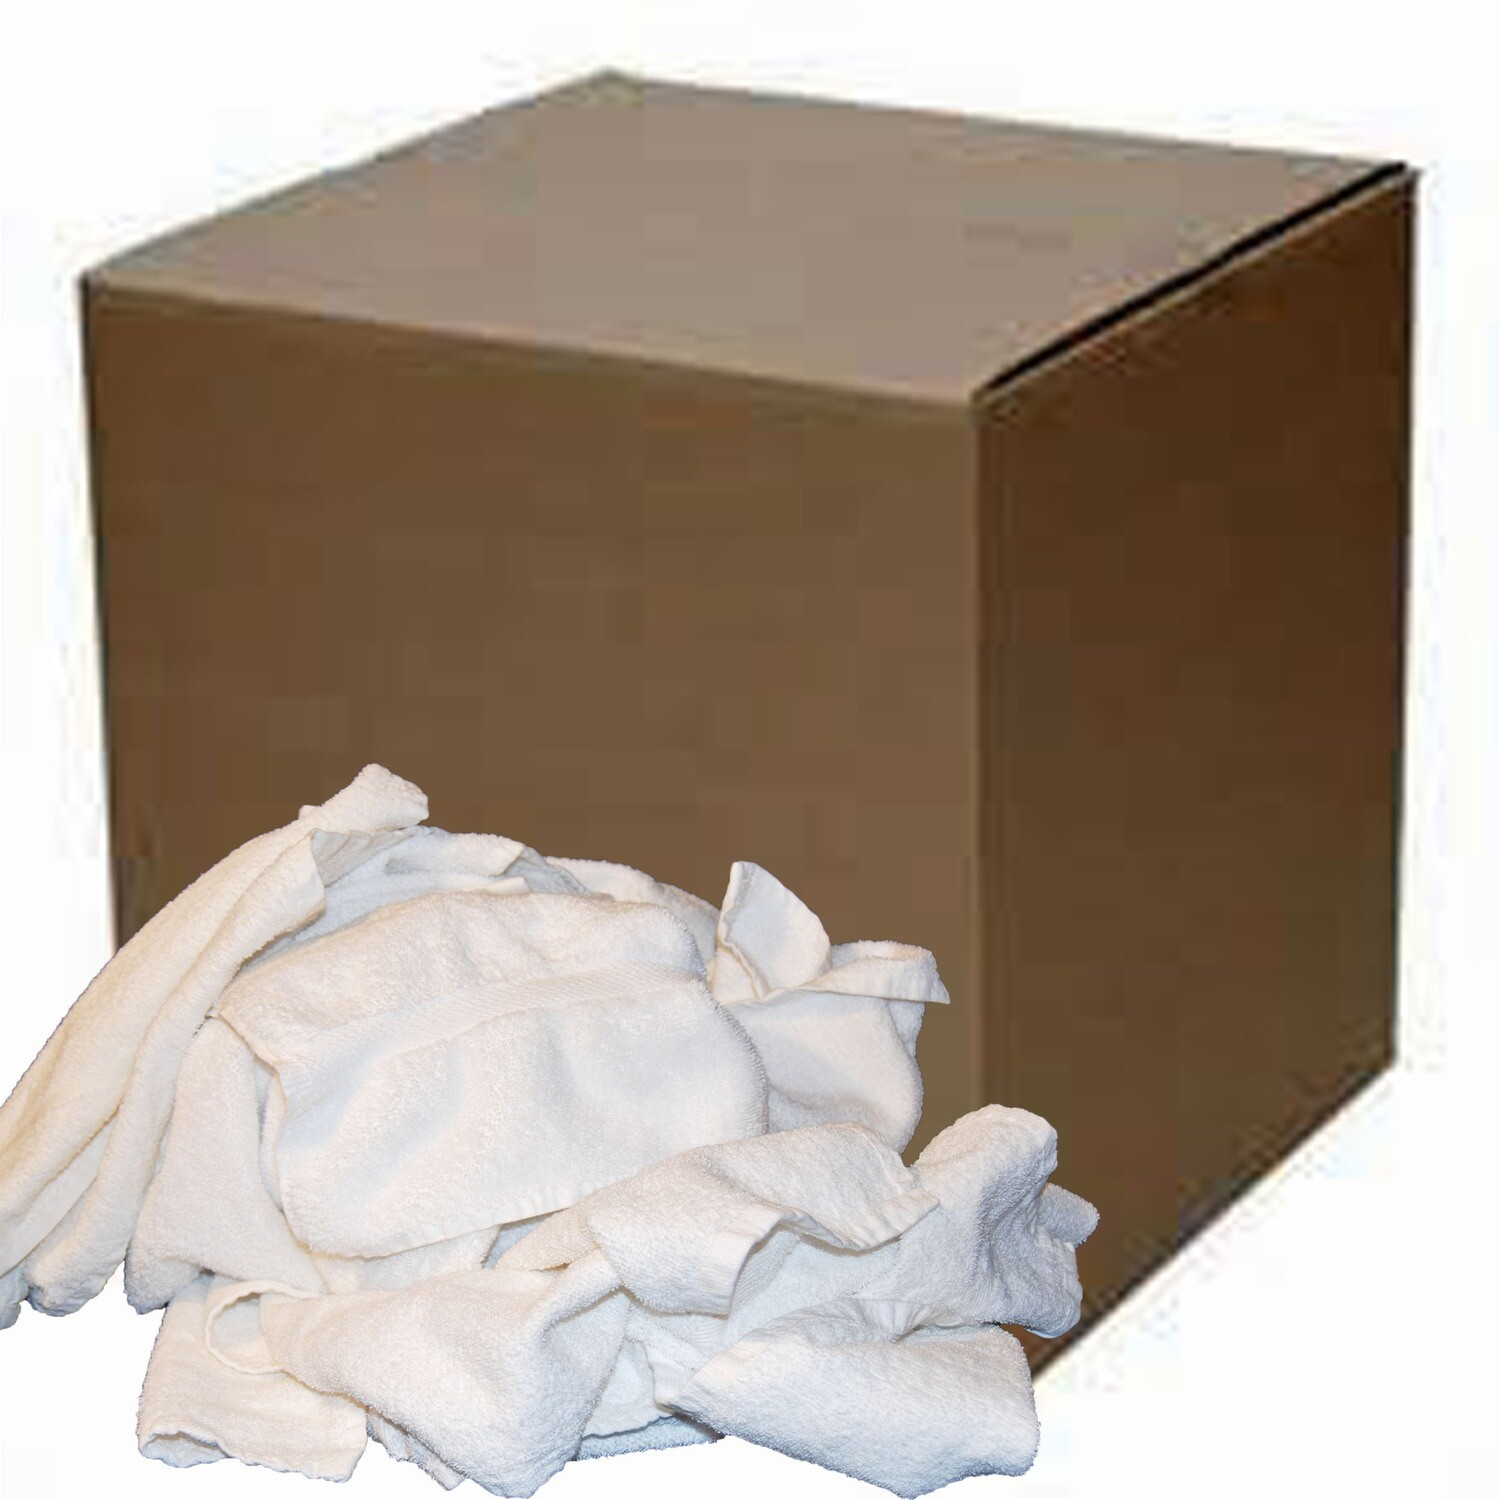 50 Lb. Box of Reclaimed White Terry RAGS